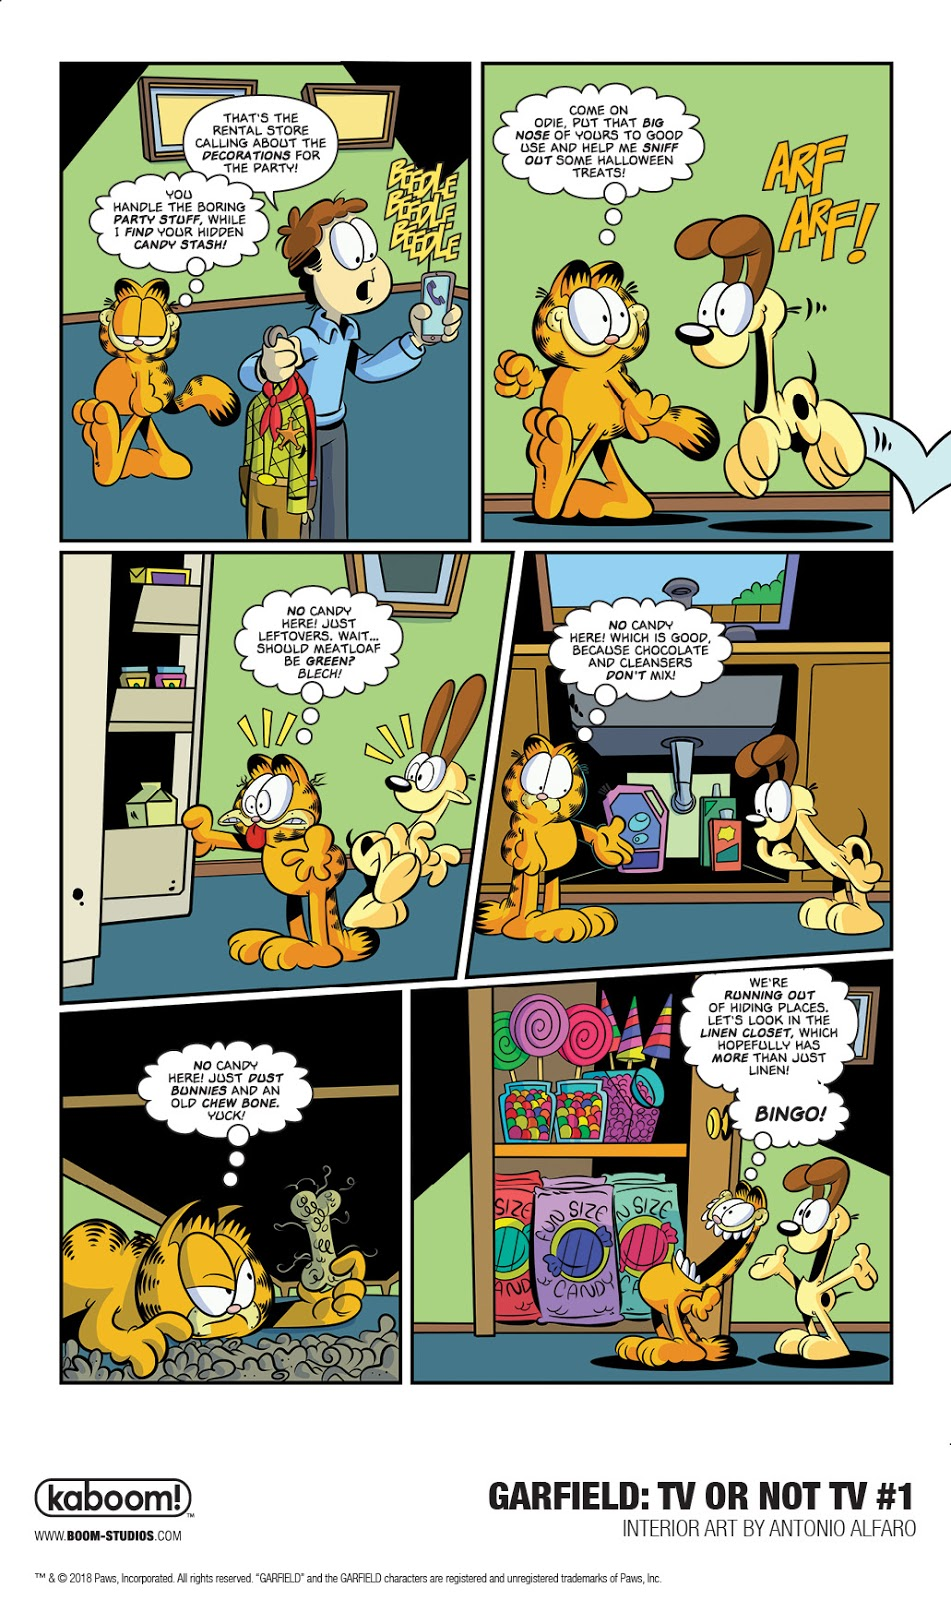 GARFIELD: TV OR NOT TV?